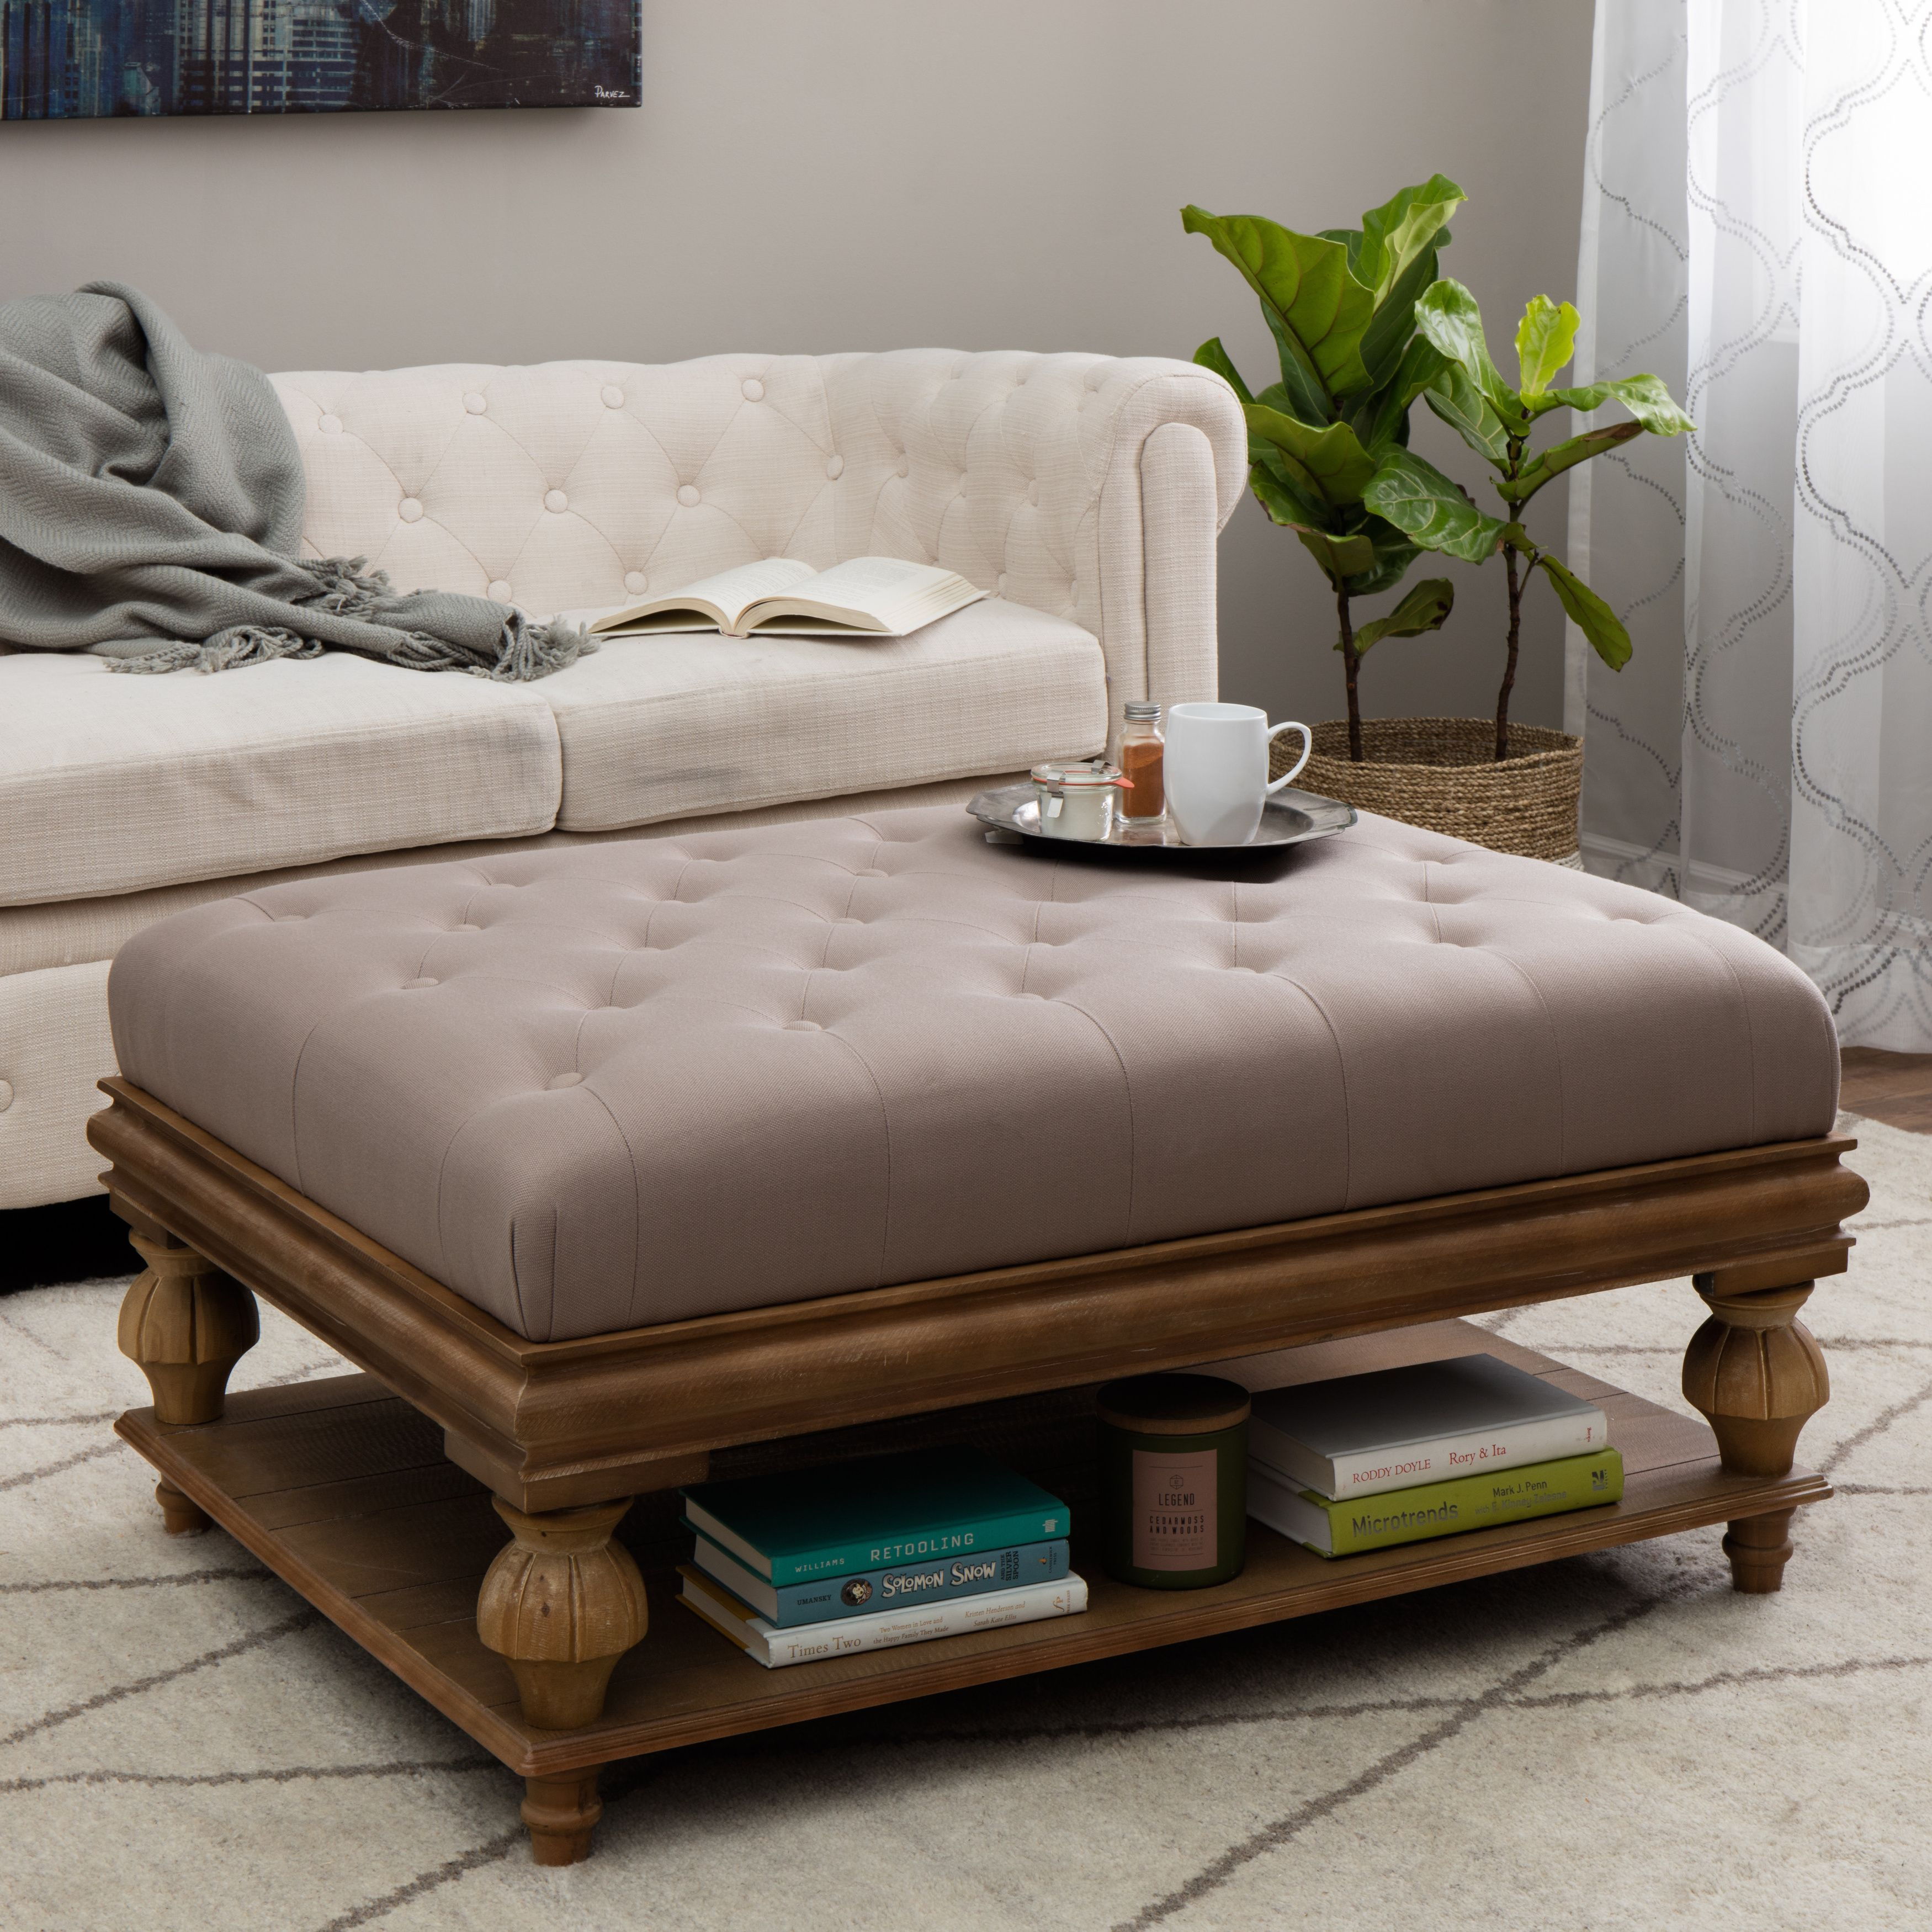 Elements Rubbed Light Brown Wood Ottoman w/ Taupe Cushion | Baúl y Mesas